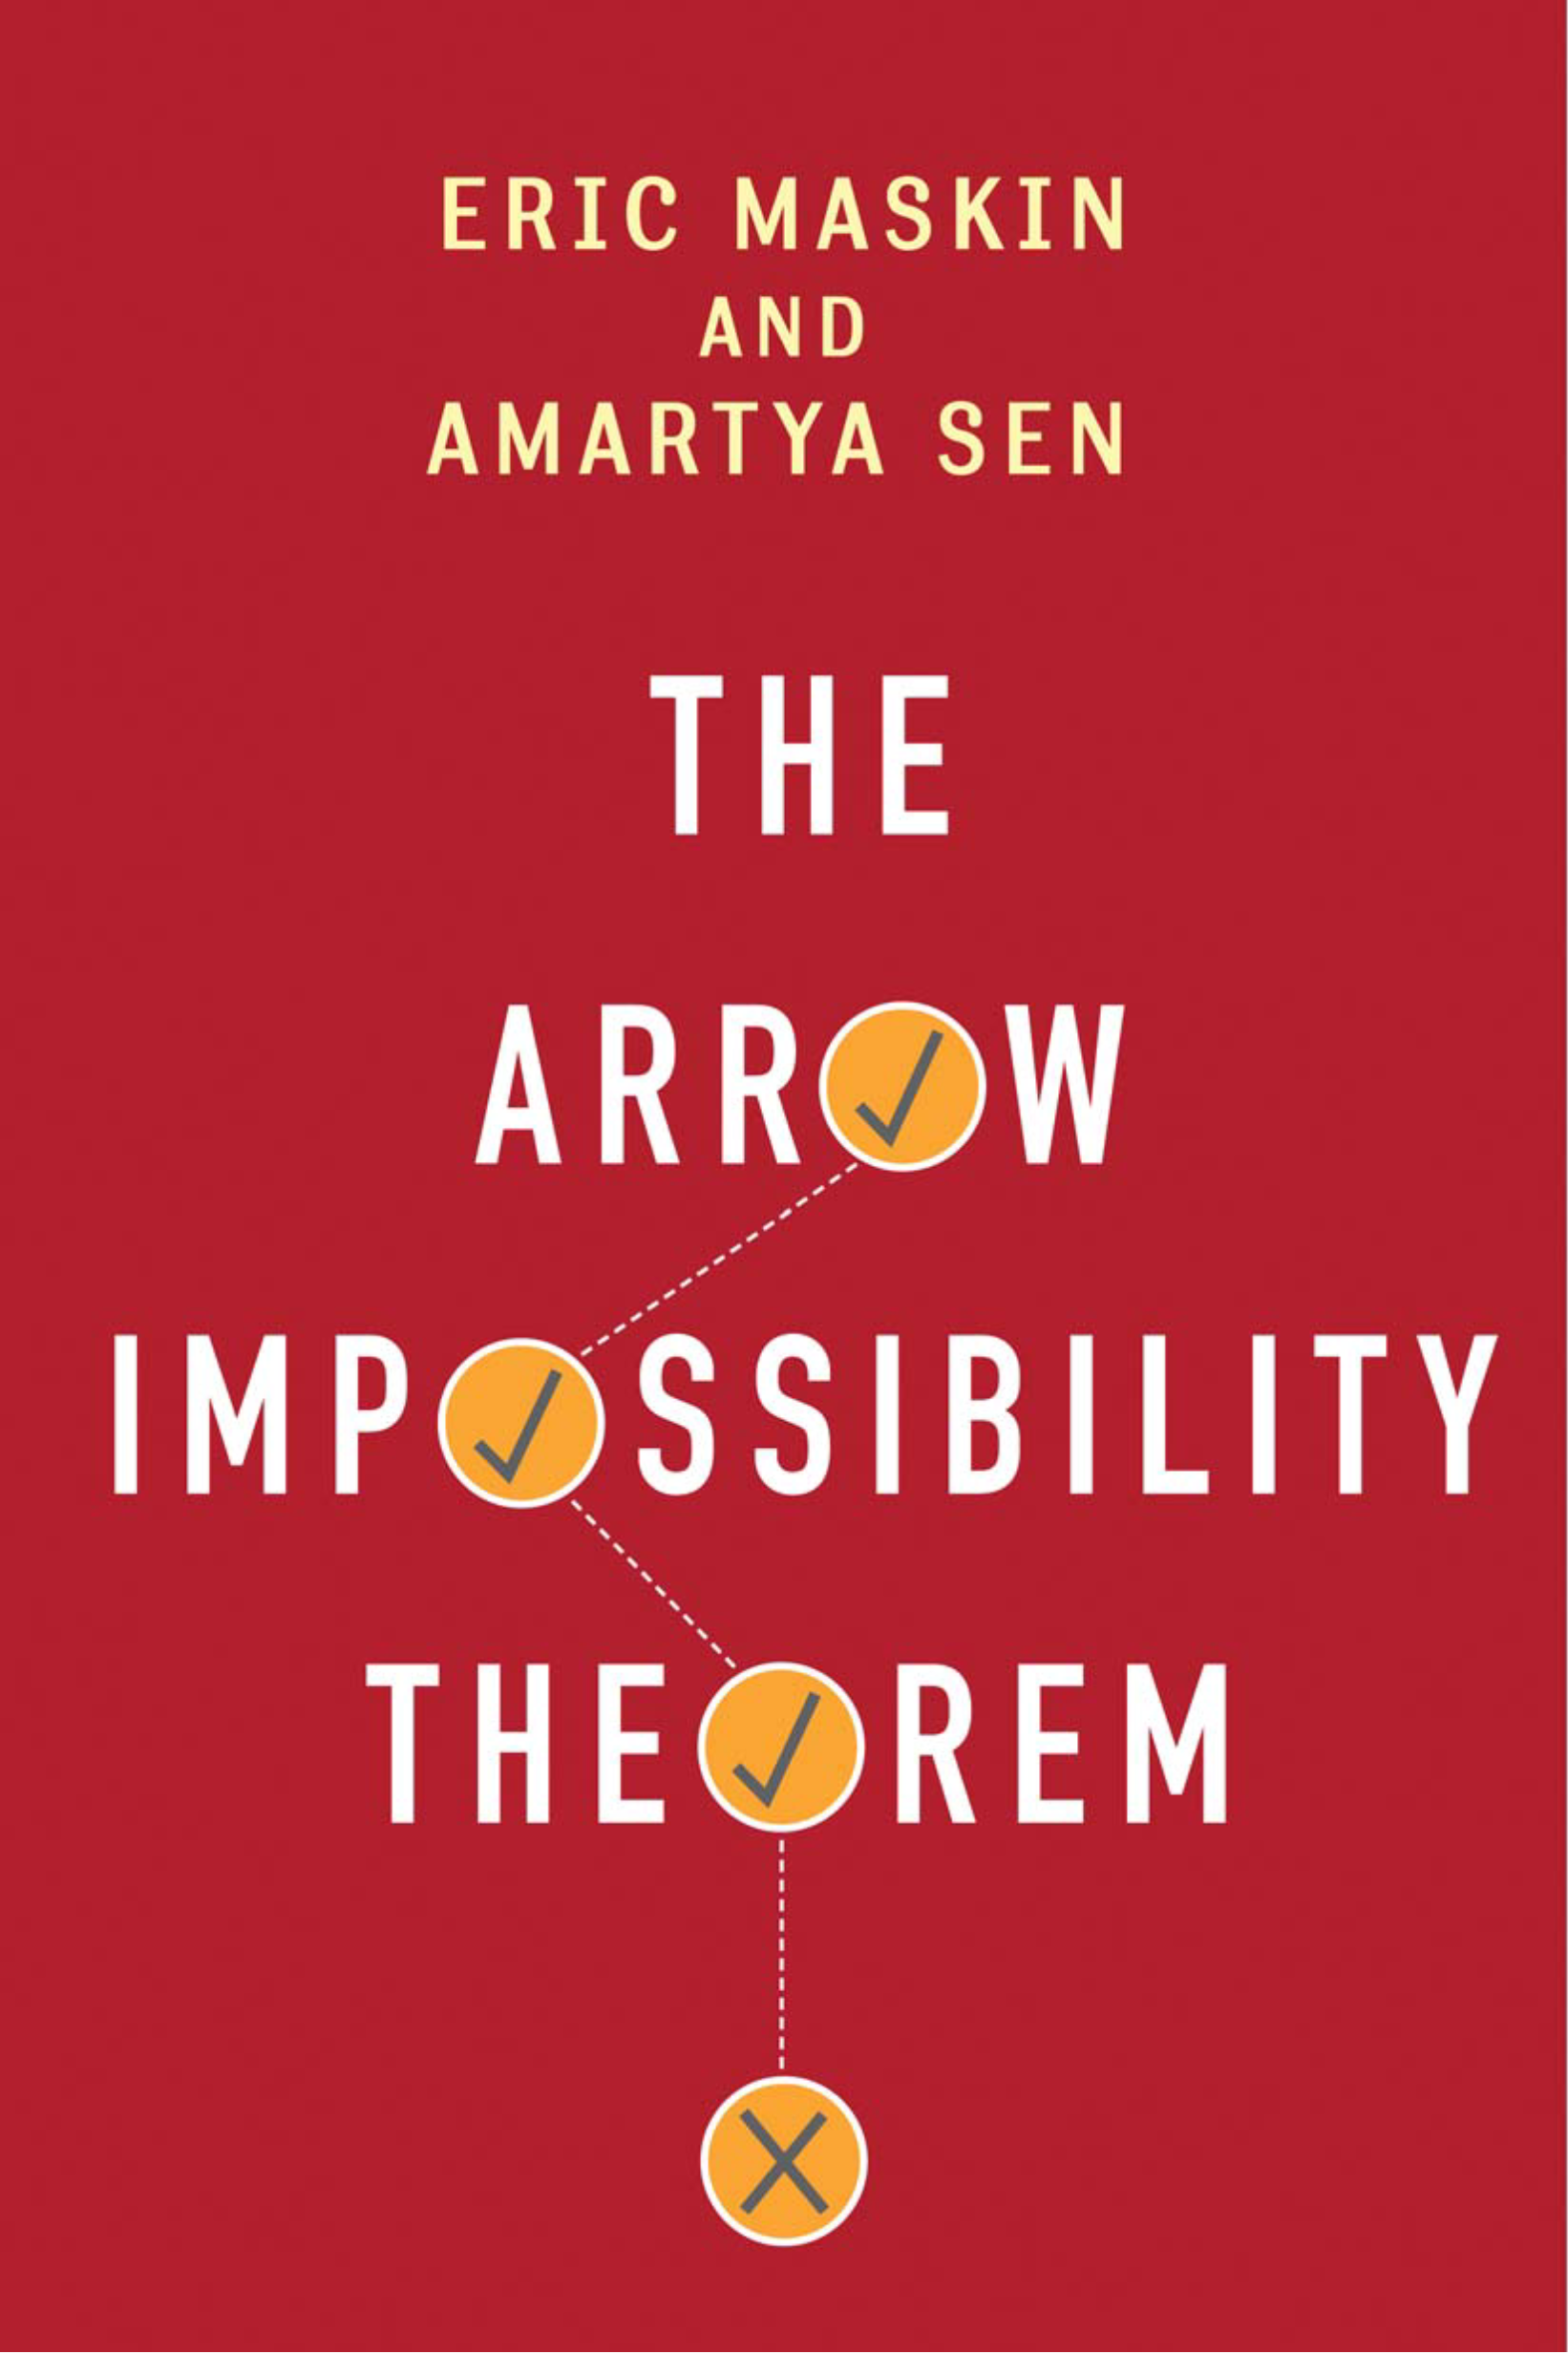 arrow impossibility theorem essay Perhaps his most startling thesis (built on elementary mathematics) was the  impossibility theorem (or arrow's theorem), which holds that, under certain conditions of rationality and equality, it is impossible to guarantee that a ranking of societal preferences will correspond to rankings of individual preferences when more than.